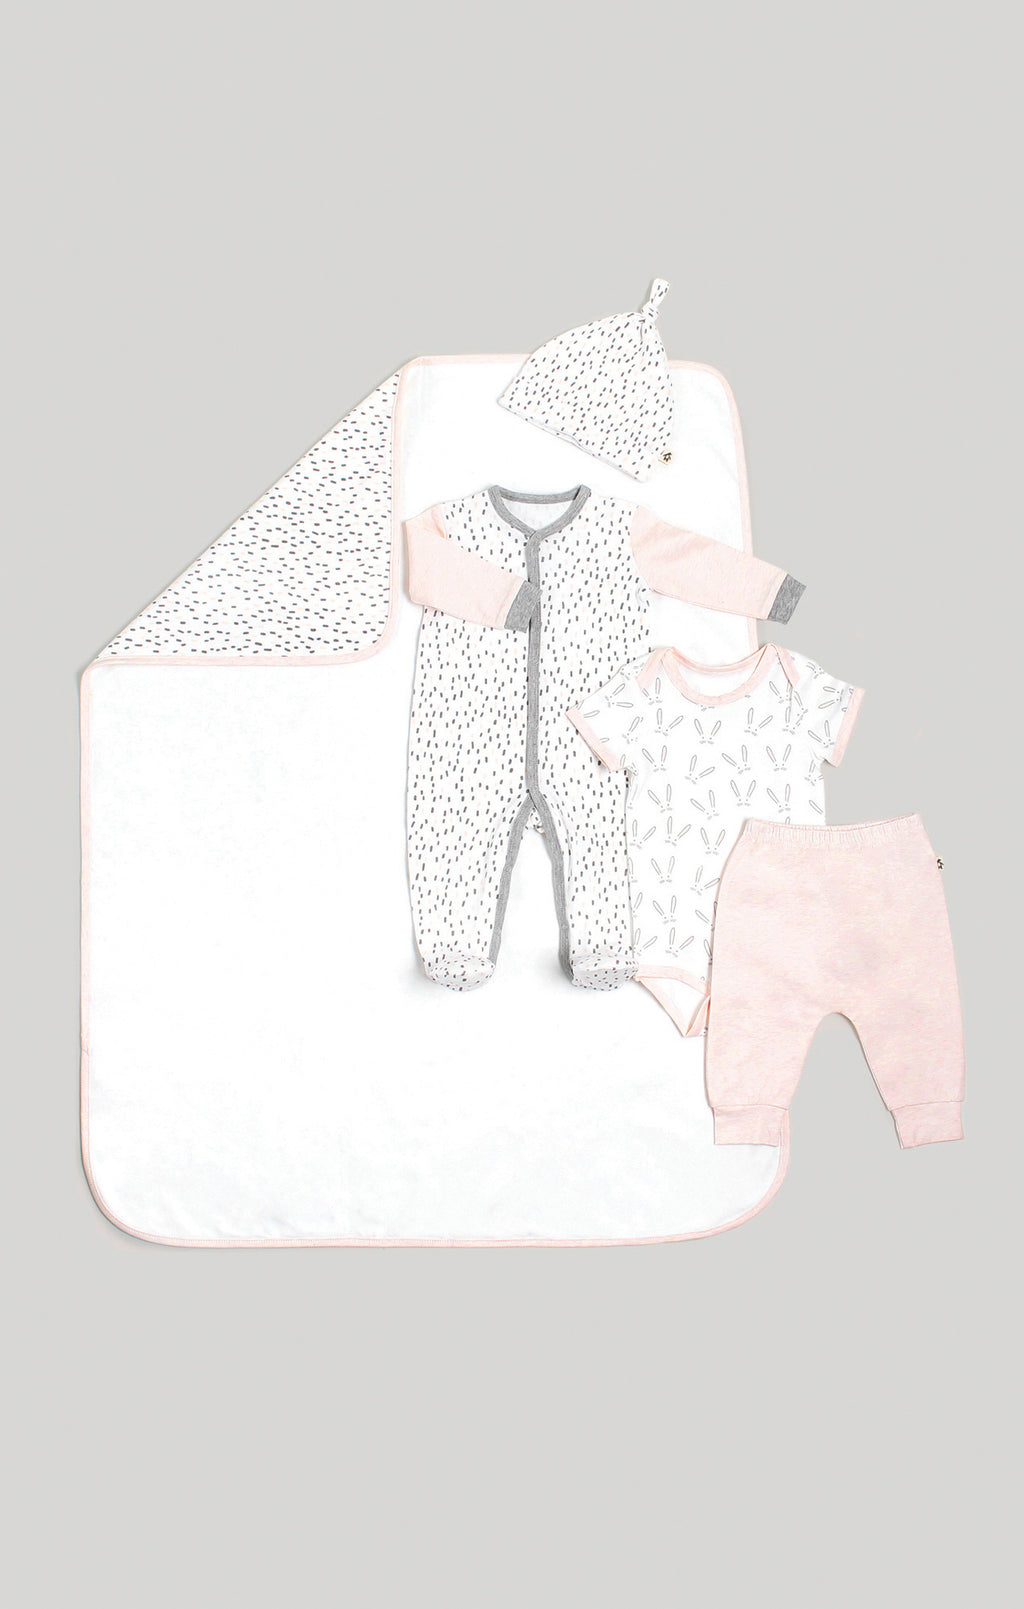 Baby Clothes | 5 Piece Set - Blanket, Sleeper, Beanie, Bodysuit & Pants